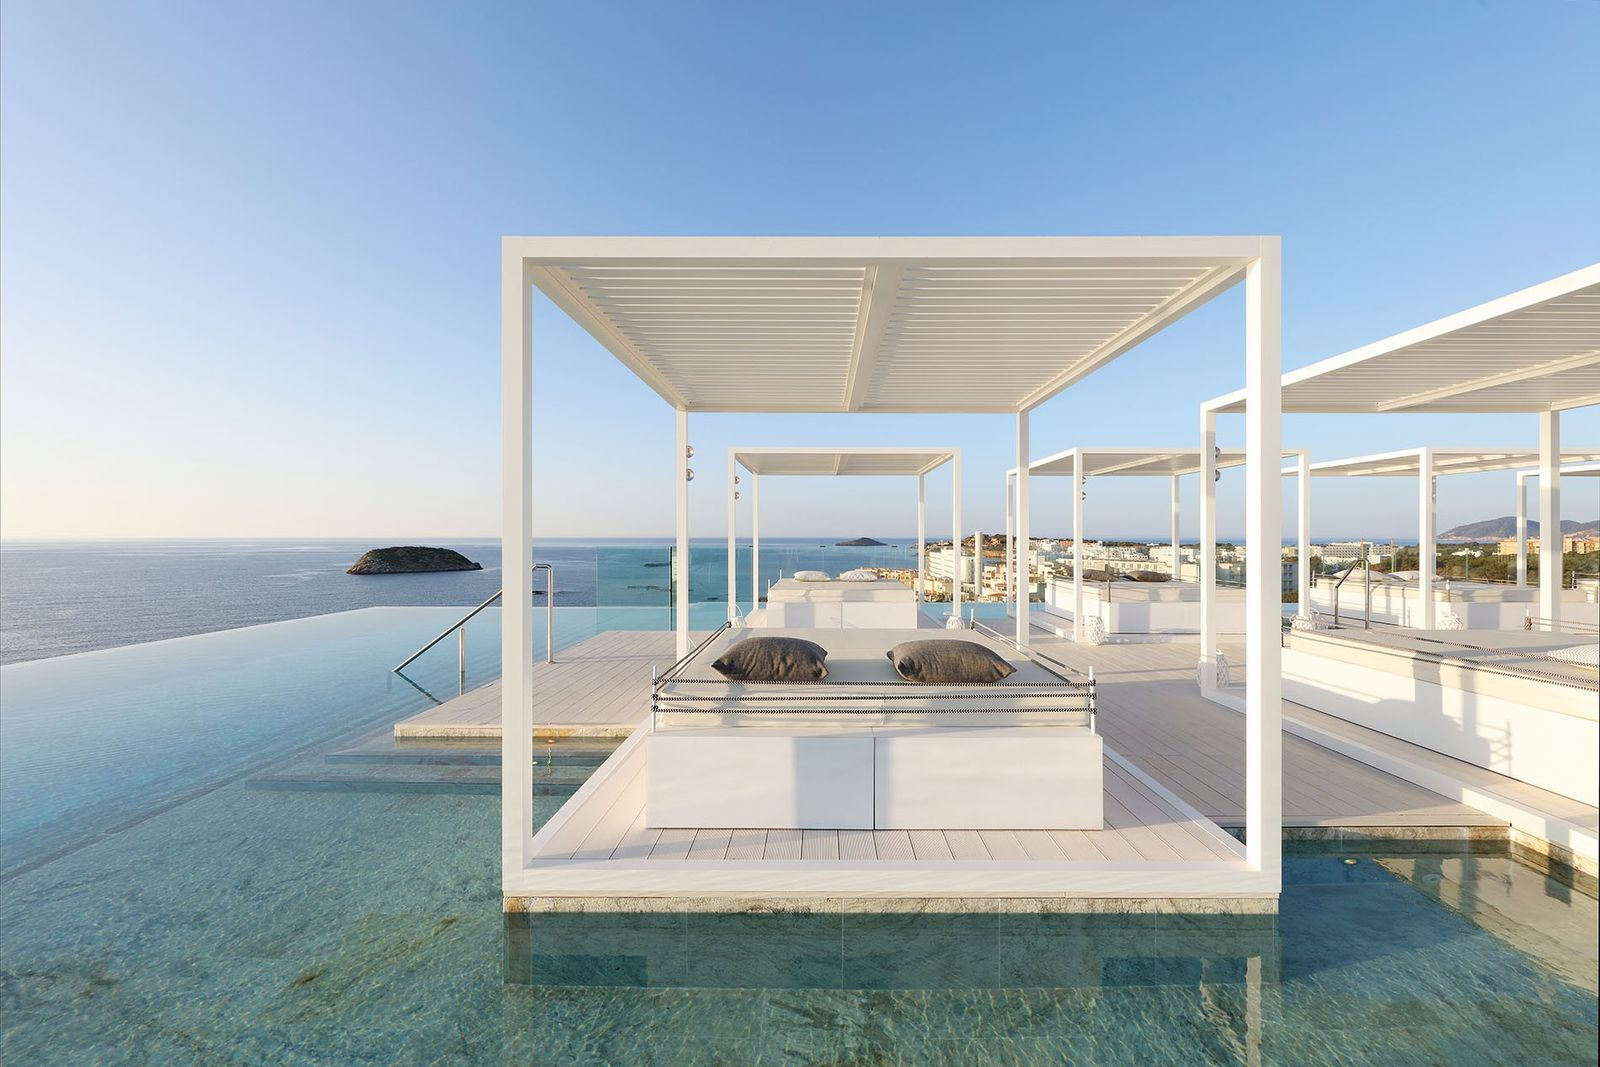 The Ibiza you've dreamed of: Bless Hotel is the 'Coco Chanel-inspired' hotel on the Santa Eulalia ...